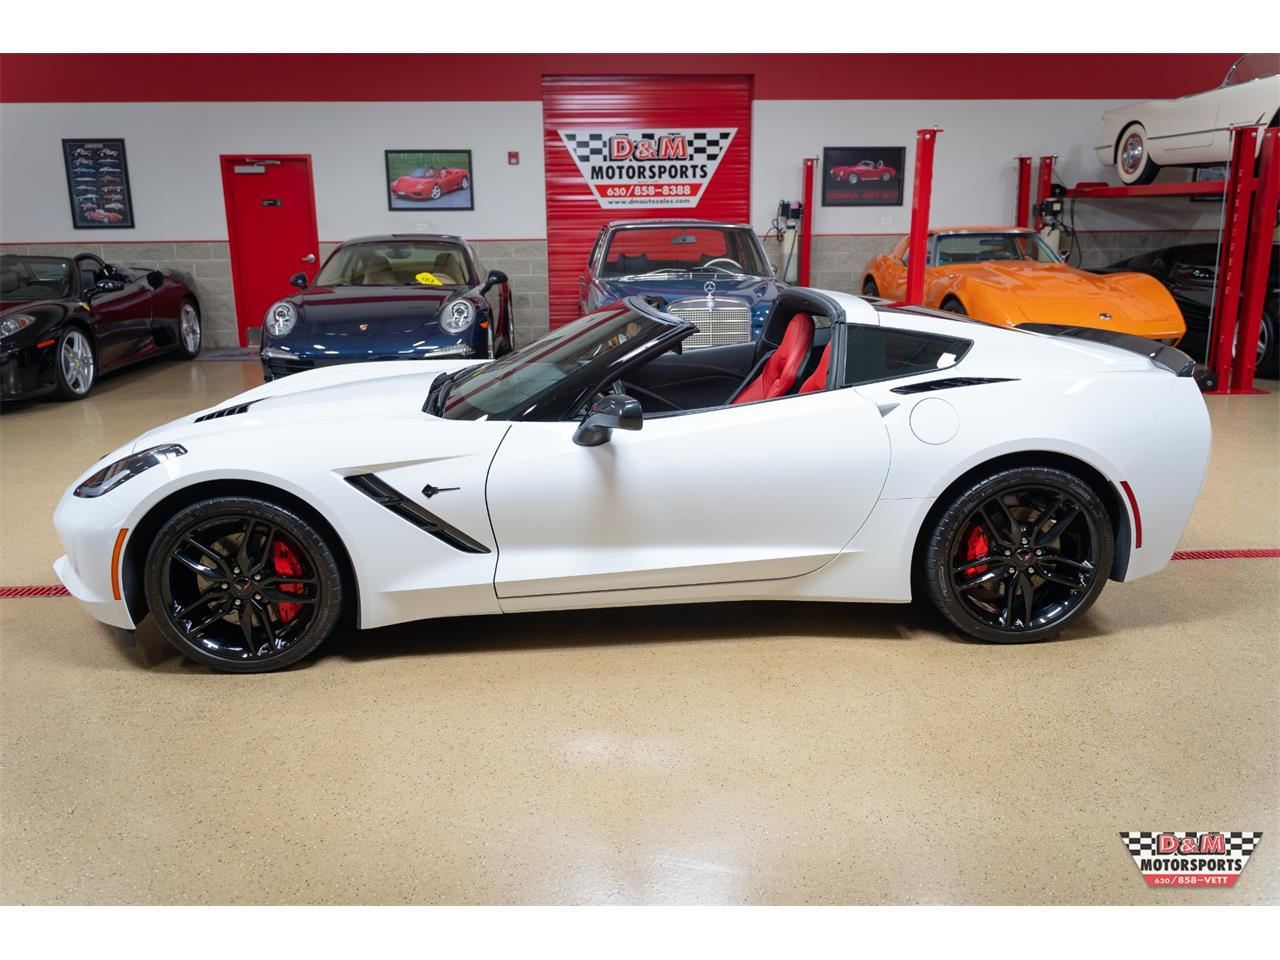 Large Picture of '16 Chevrolet Corvette located in Glen Ellyn Illinois Offered by D & M Motorsports - R2HE